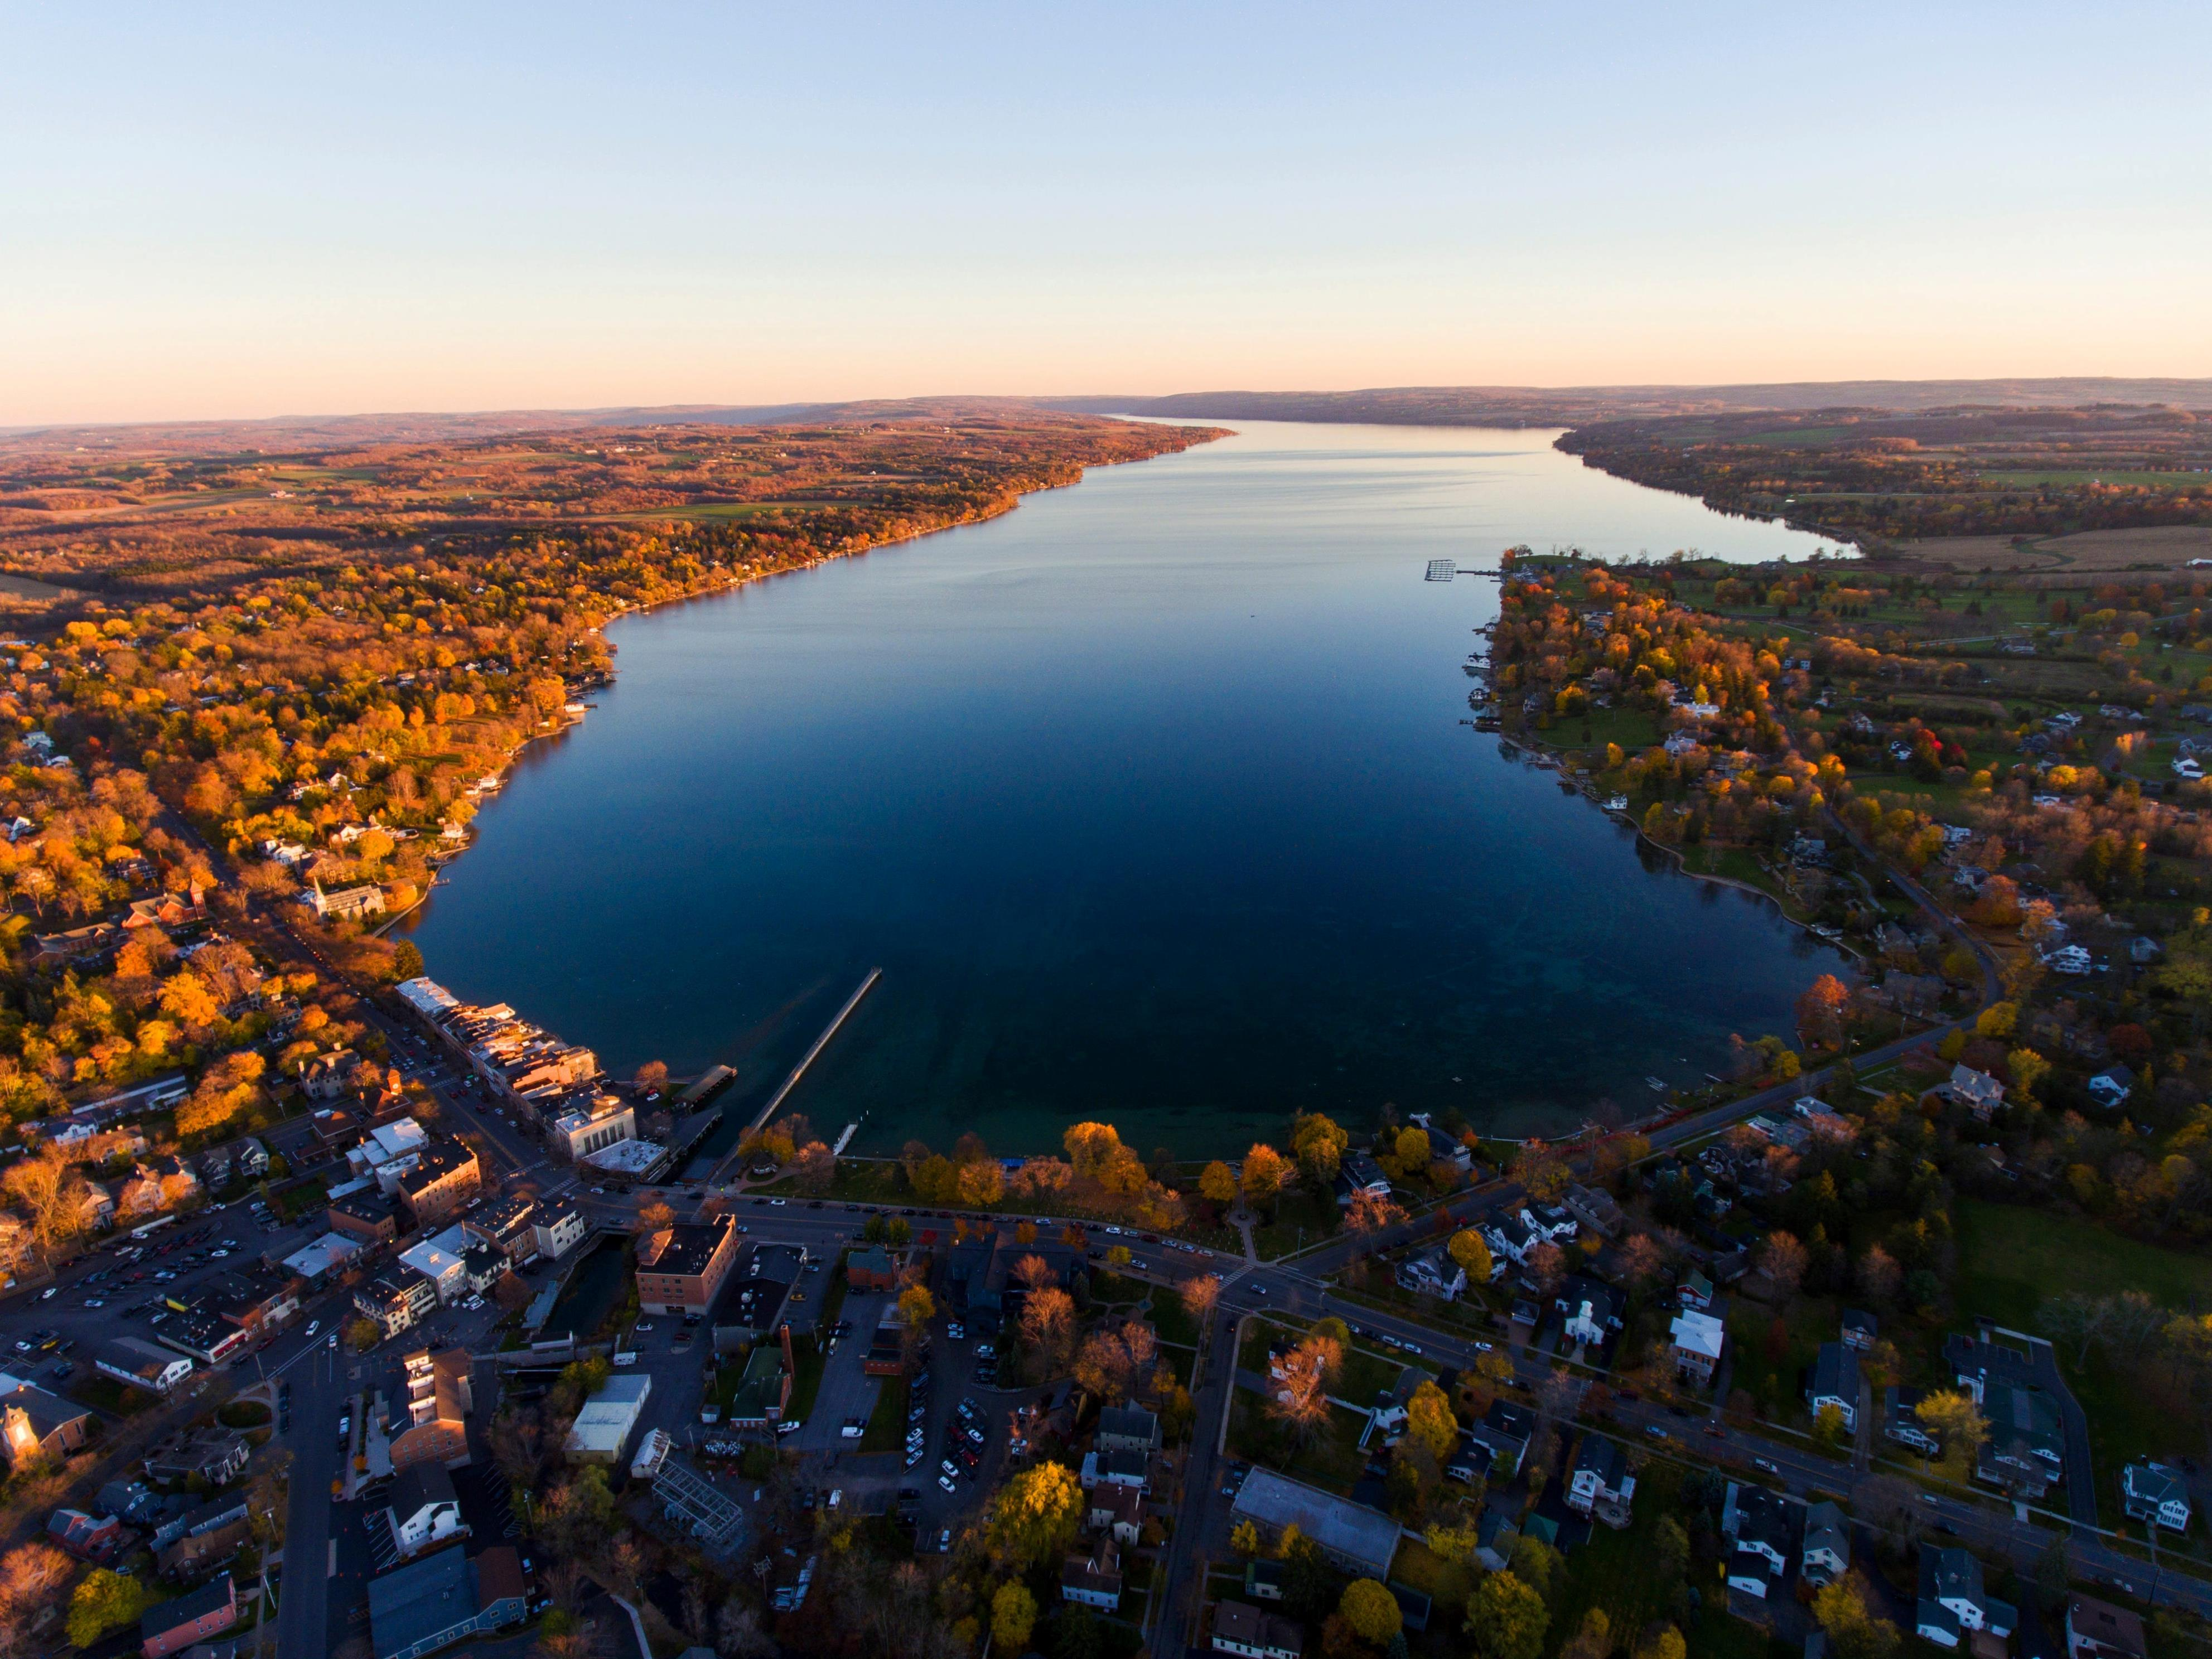 """Slide 7 of 17: Another great spot in New York during the fall is the Finger Lakes region, which is known for its foliage. There is so much to do there, including riding hot-air balloons, hiking, visiting vineyards for wine tastings, relaxing at spas, and trying out Hikyoga (hiking-yoga).Every fall since 2015, the town of Ithaca has transformed into Diagon Alley for a """"Harry Potter""""-themed festival — but the organizers are taking a hiatus this year.If you want to do something spooky for Halloween, check out New York's Haunted History Trail or do a ghost walk.The area is also home to plenty of spots for autumnal eats, including the annual Apple Tasting Tour, the Finger Lakes Cheese Trail, or the Sweet Treat Trail."""